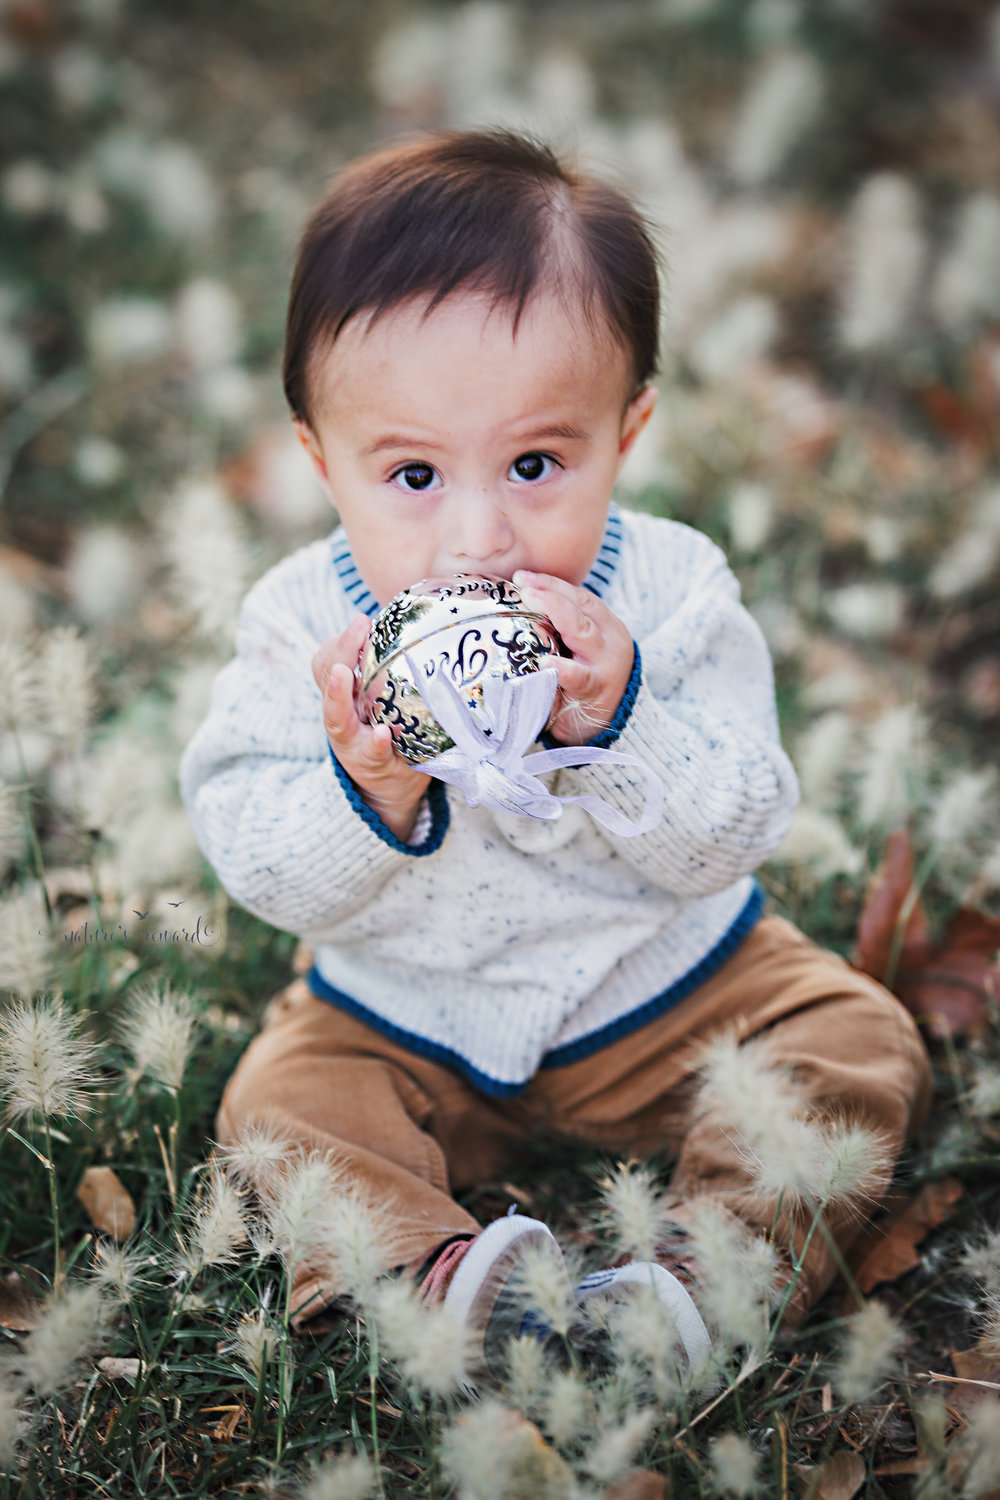 Beautiful 6 month old baby boy holding a silver bell- a sitter portrait by Nature's Reward Photography